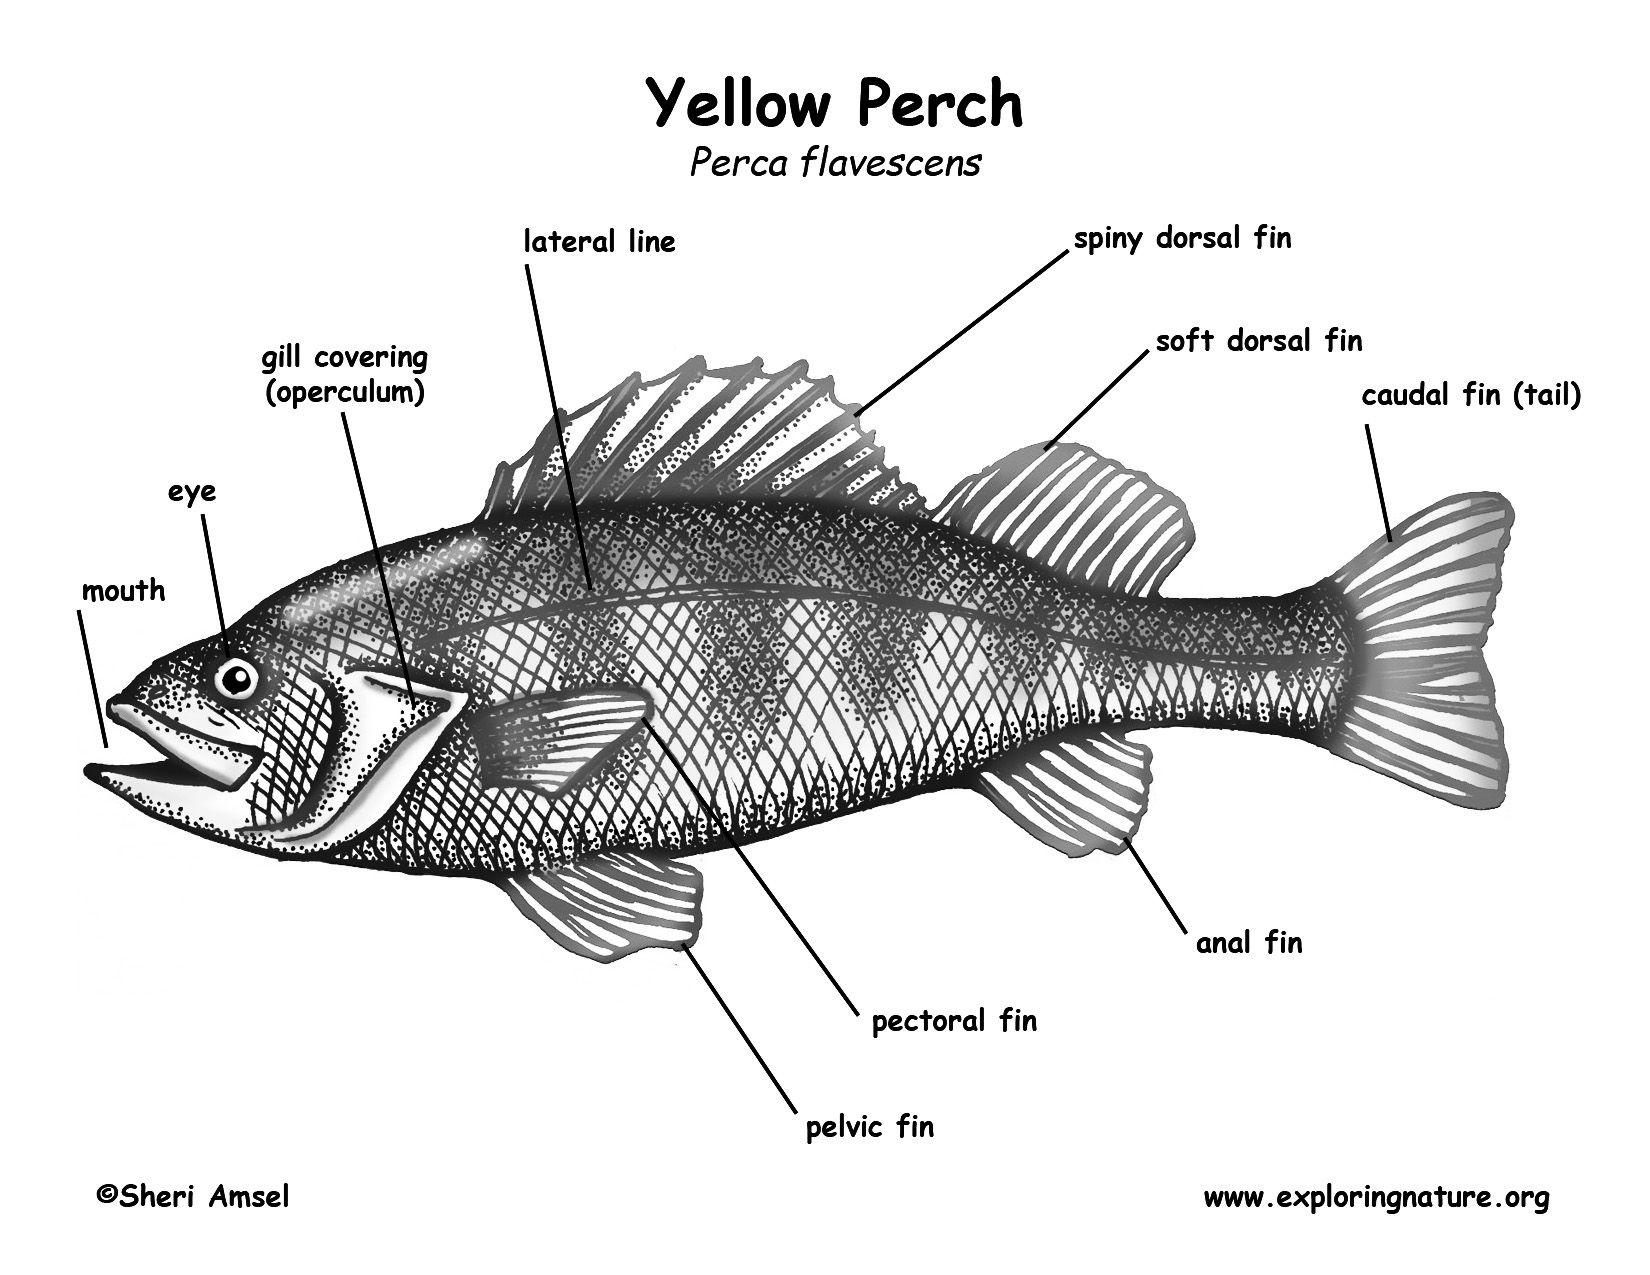 Perch Yellow